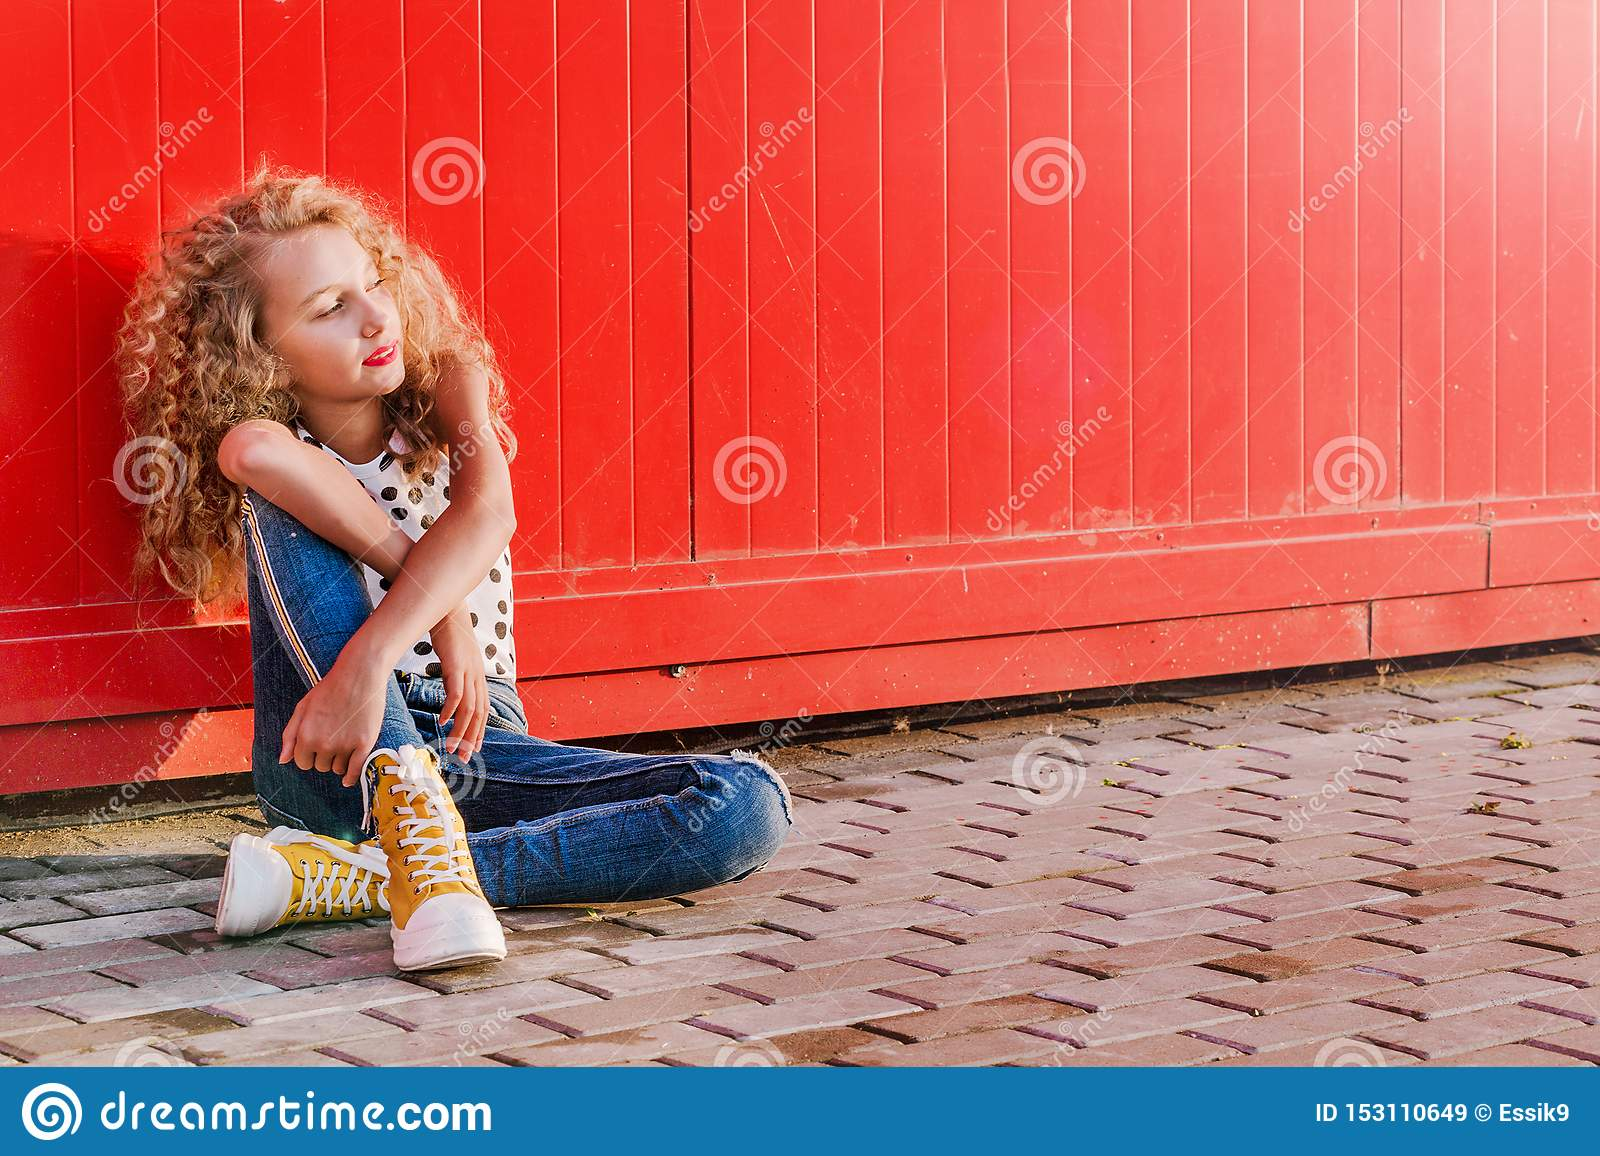 Teen girl sits against a red wall on a city street